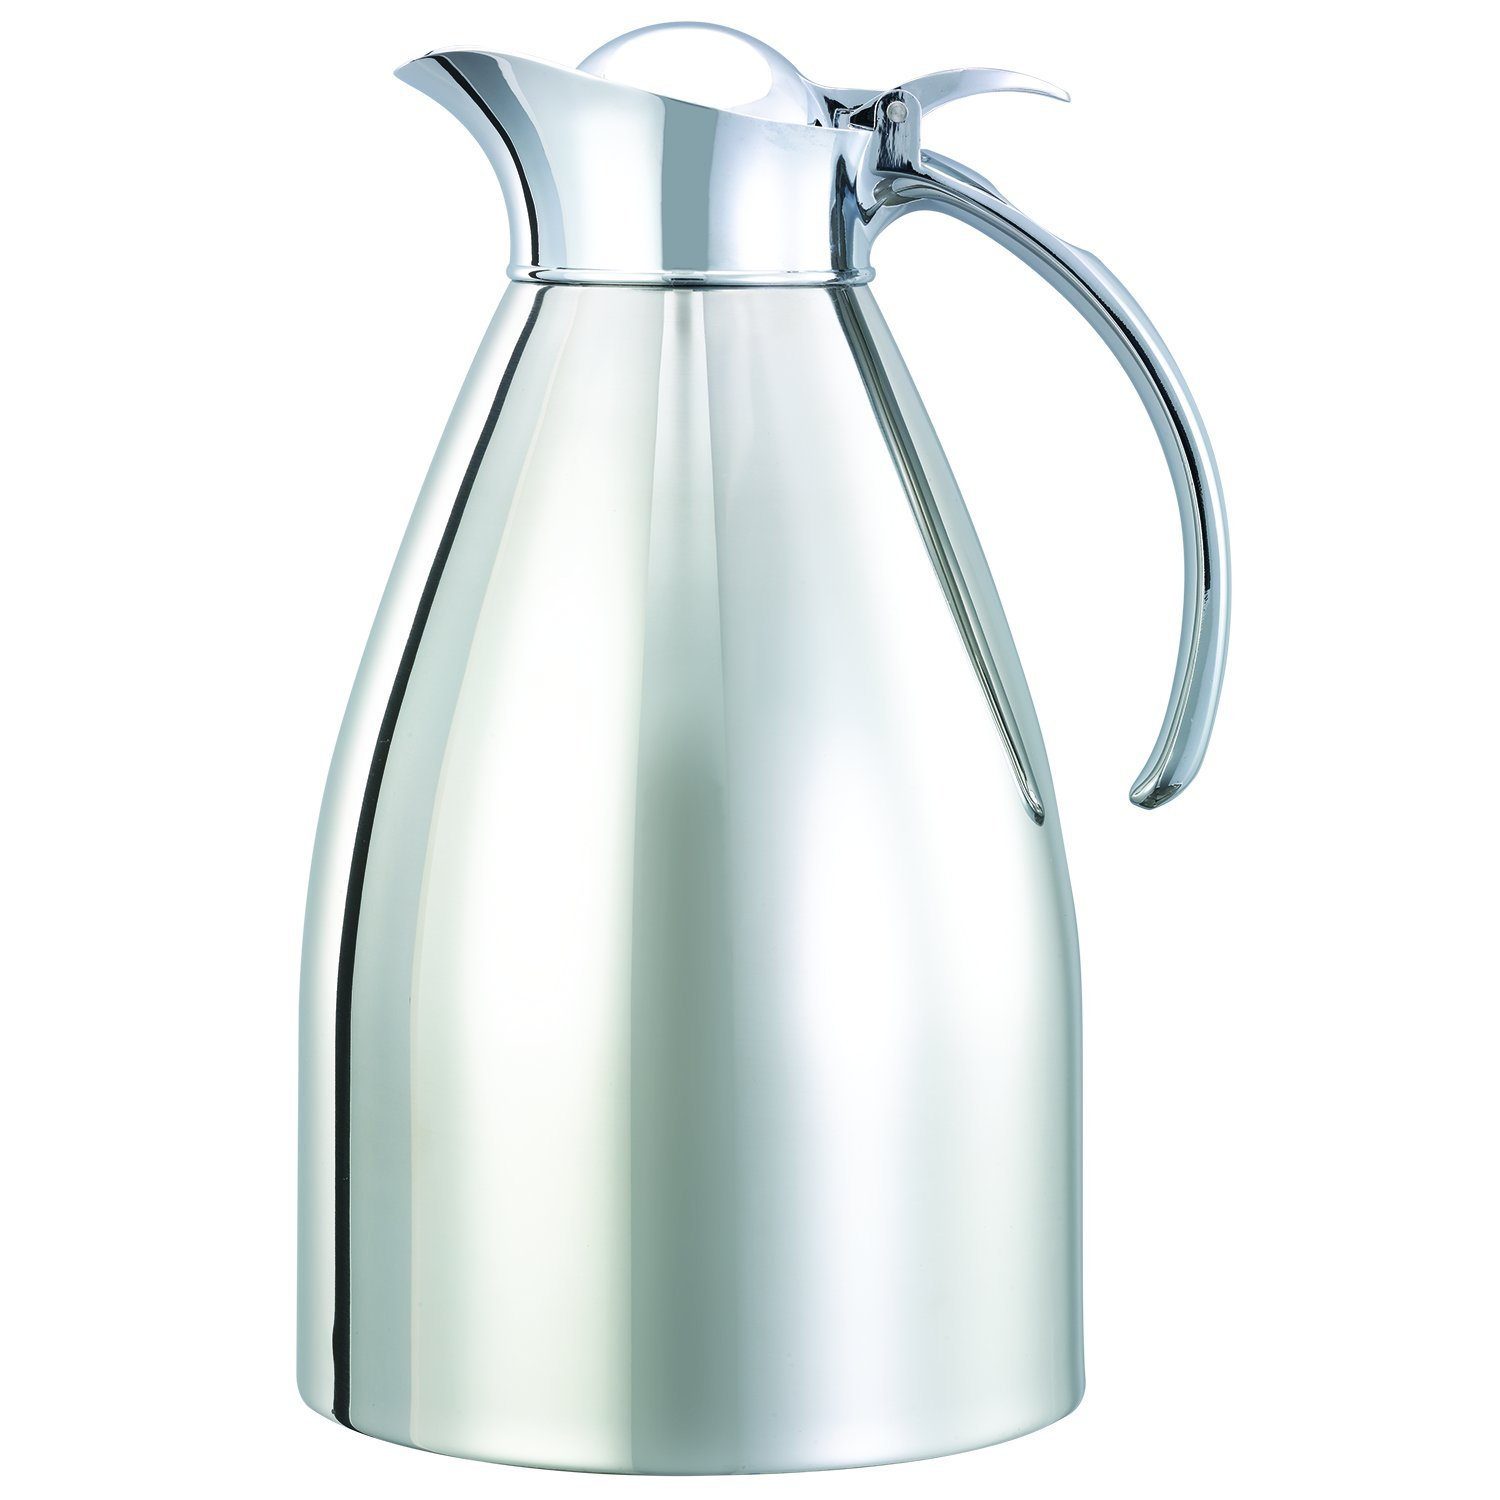 Service Ideas 982C15 Carafe, Stainless Steel, Polished, 1.5 L